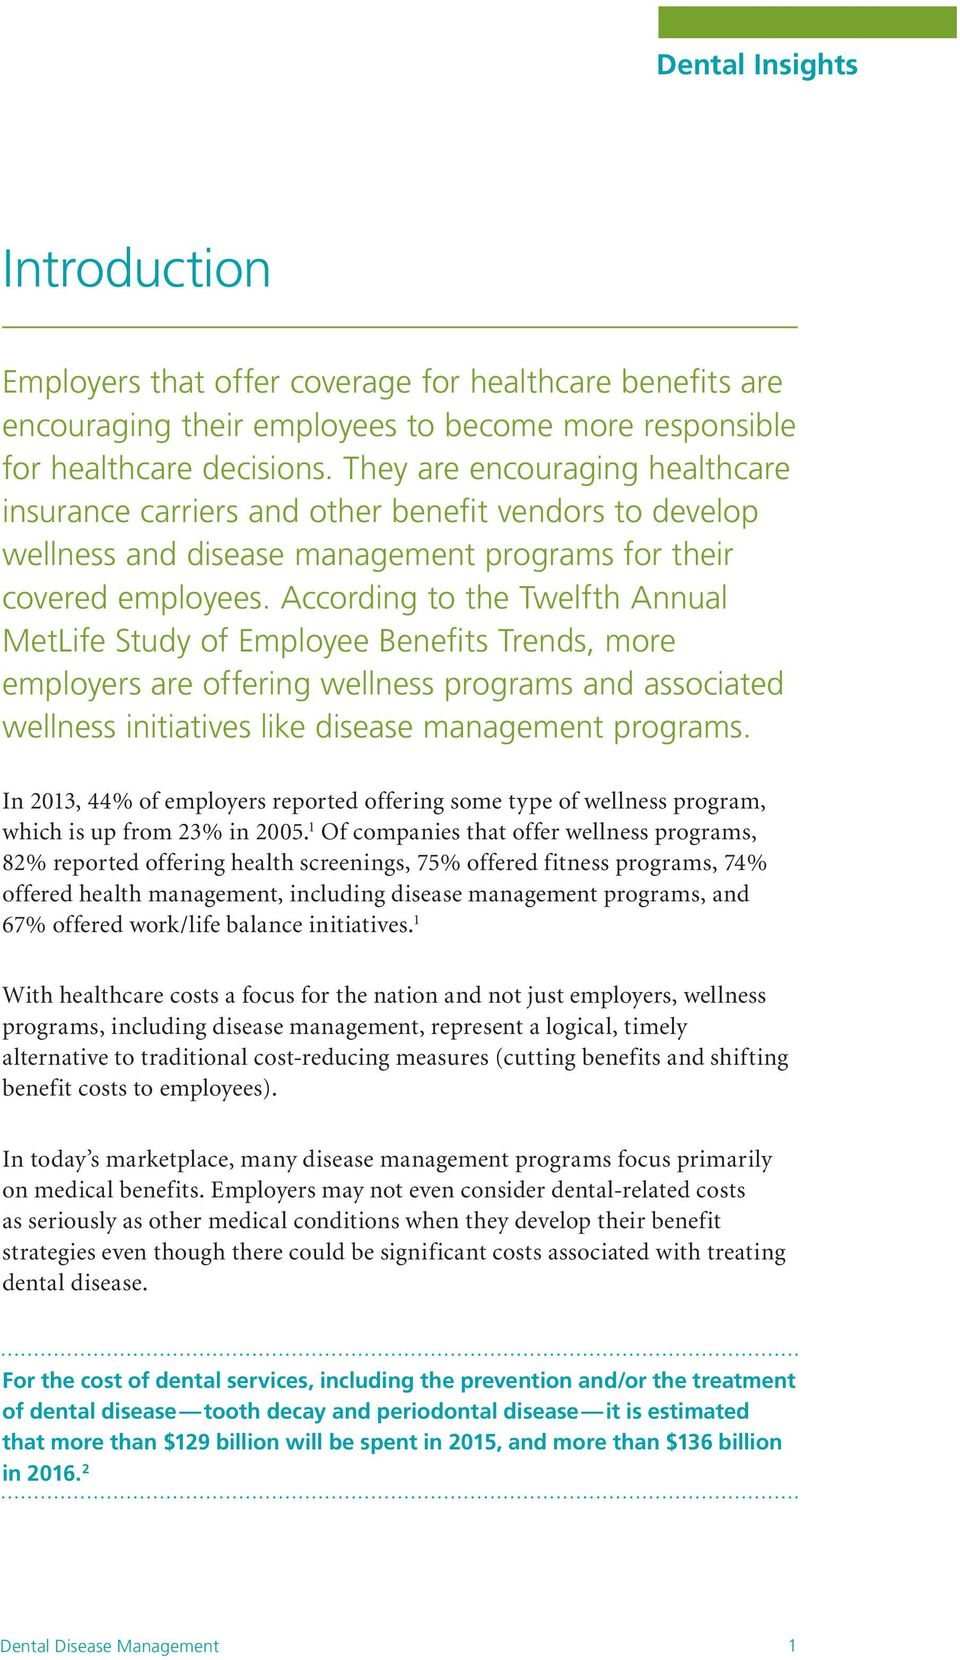 According to the Twelfth Annual MetLife Study of Employee Benefits Trends, more employers are offering wellness programs and associated wellness initiatives like disease management programs.